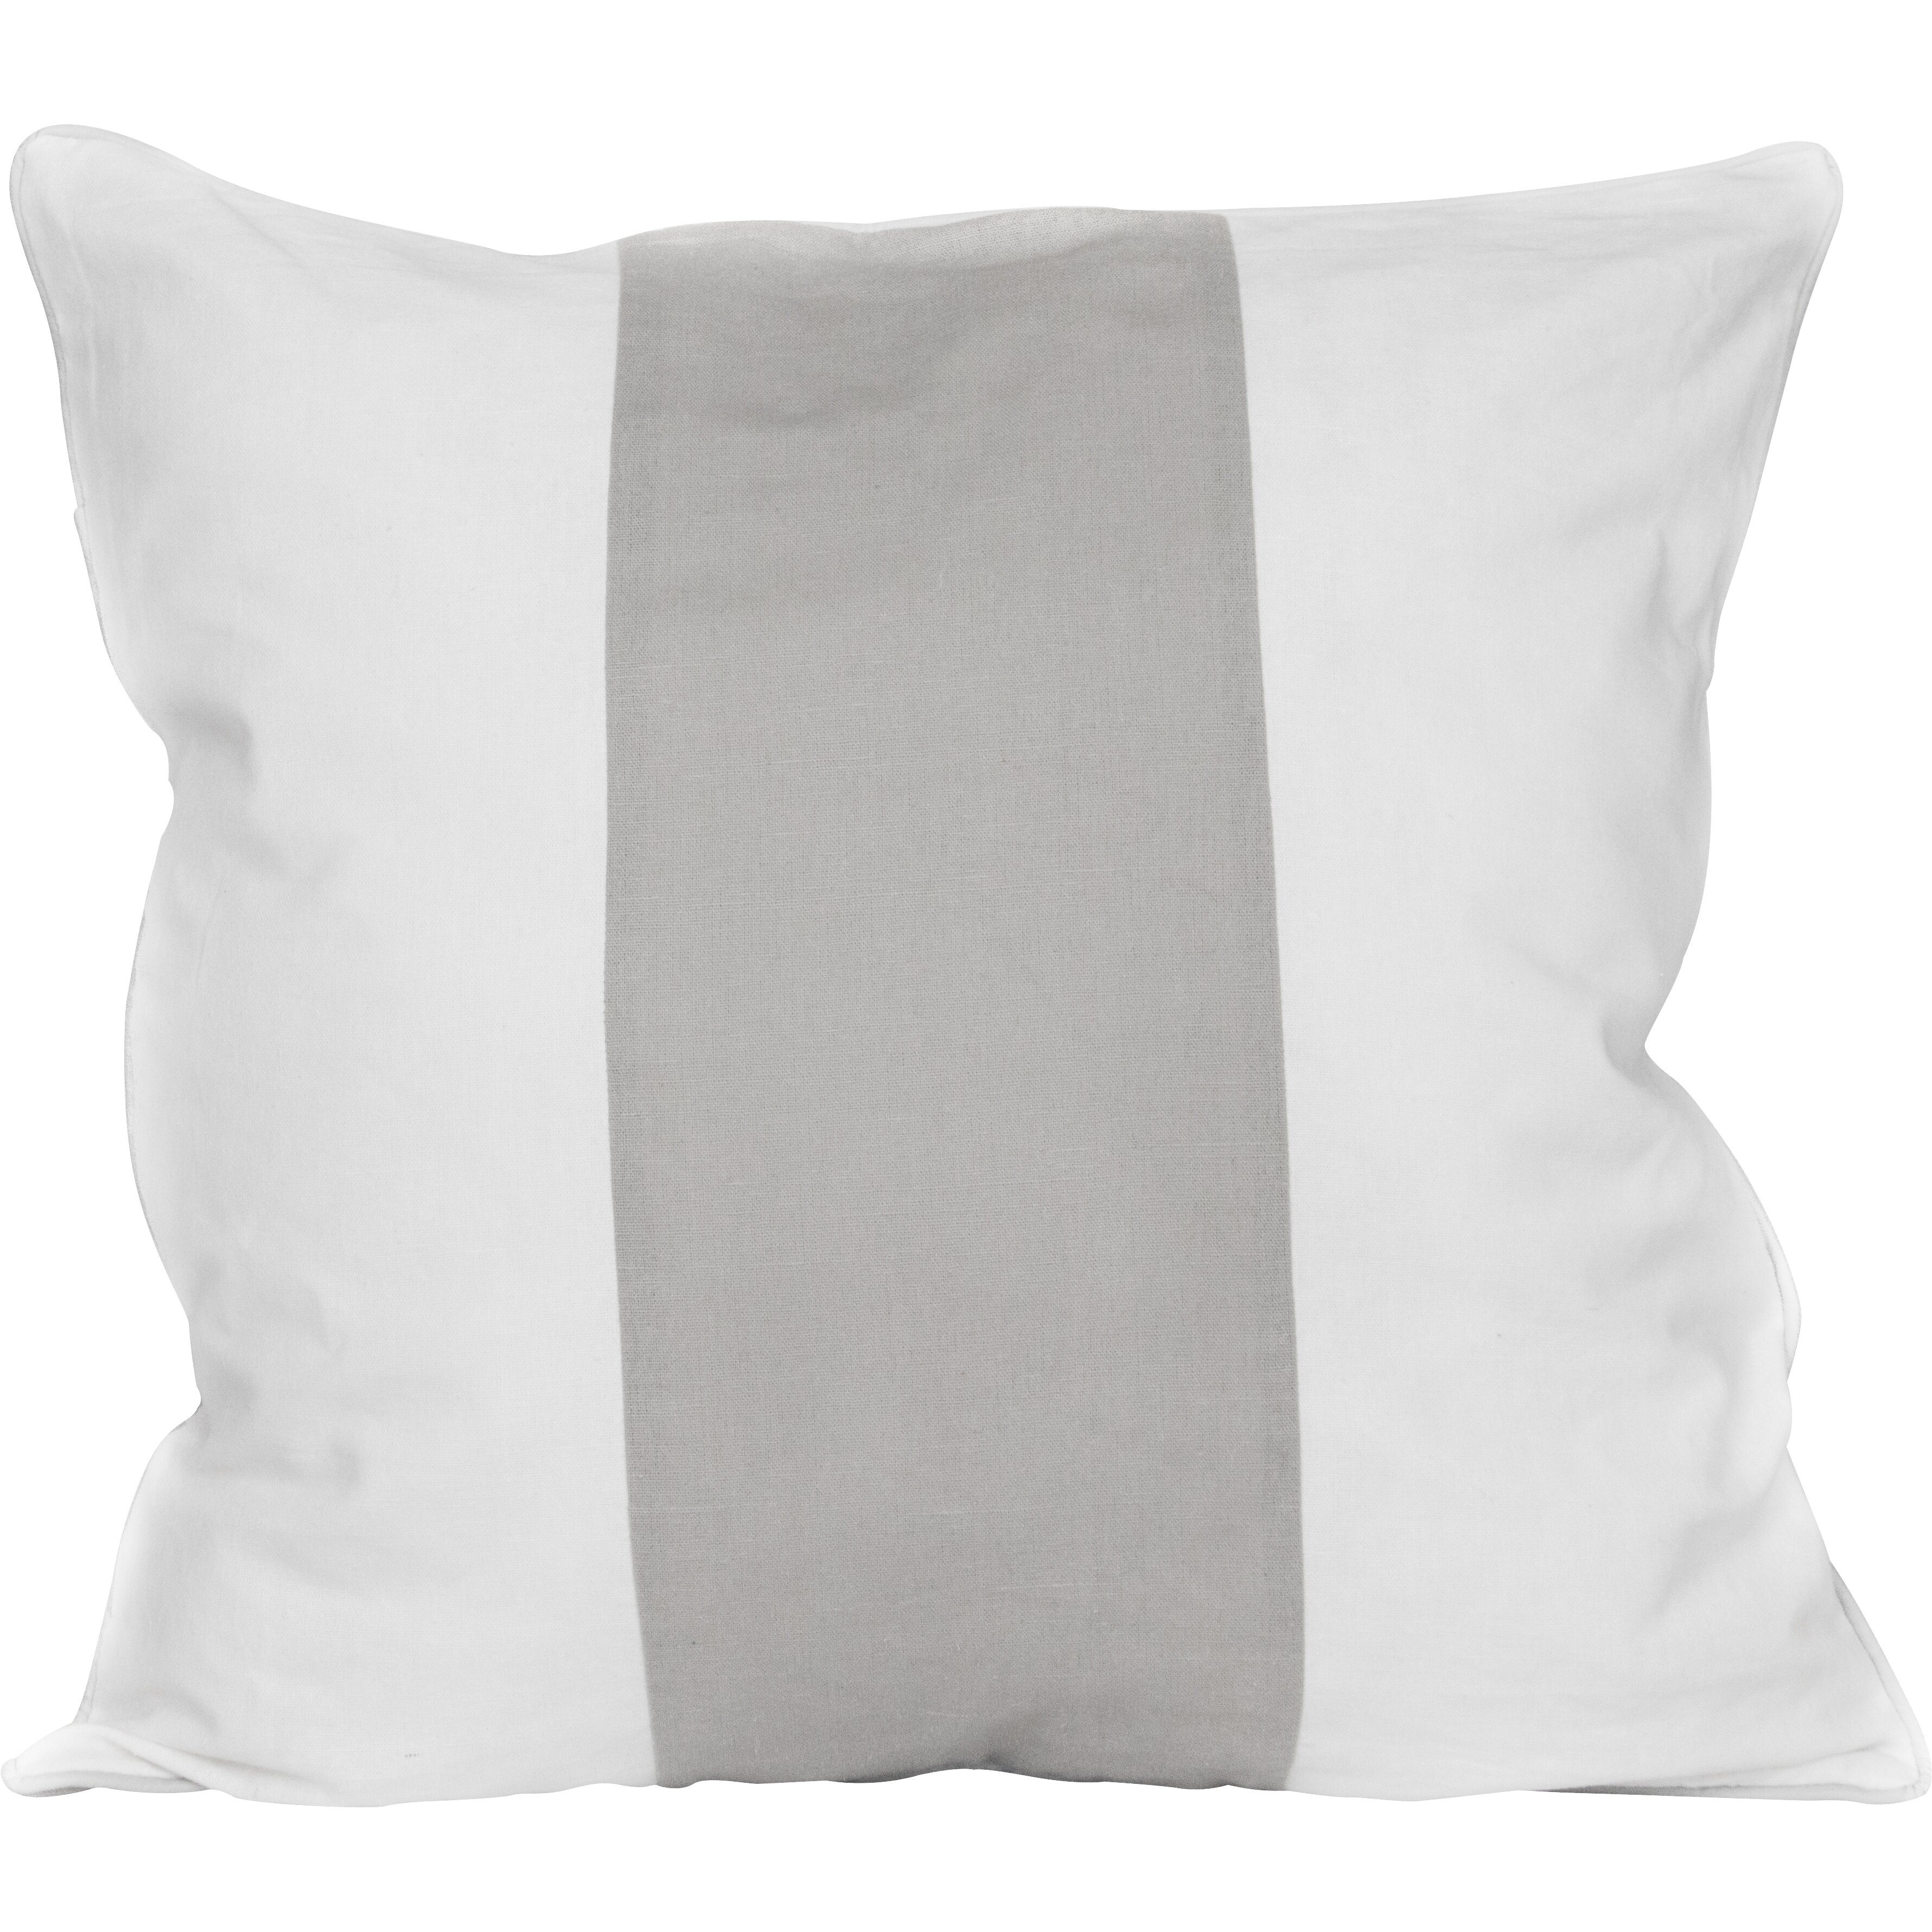 Elements By Erin Gates Solid Striped Throw Pillow